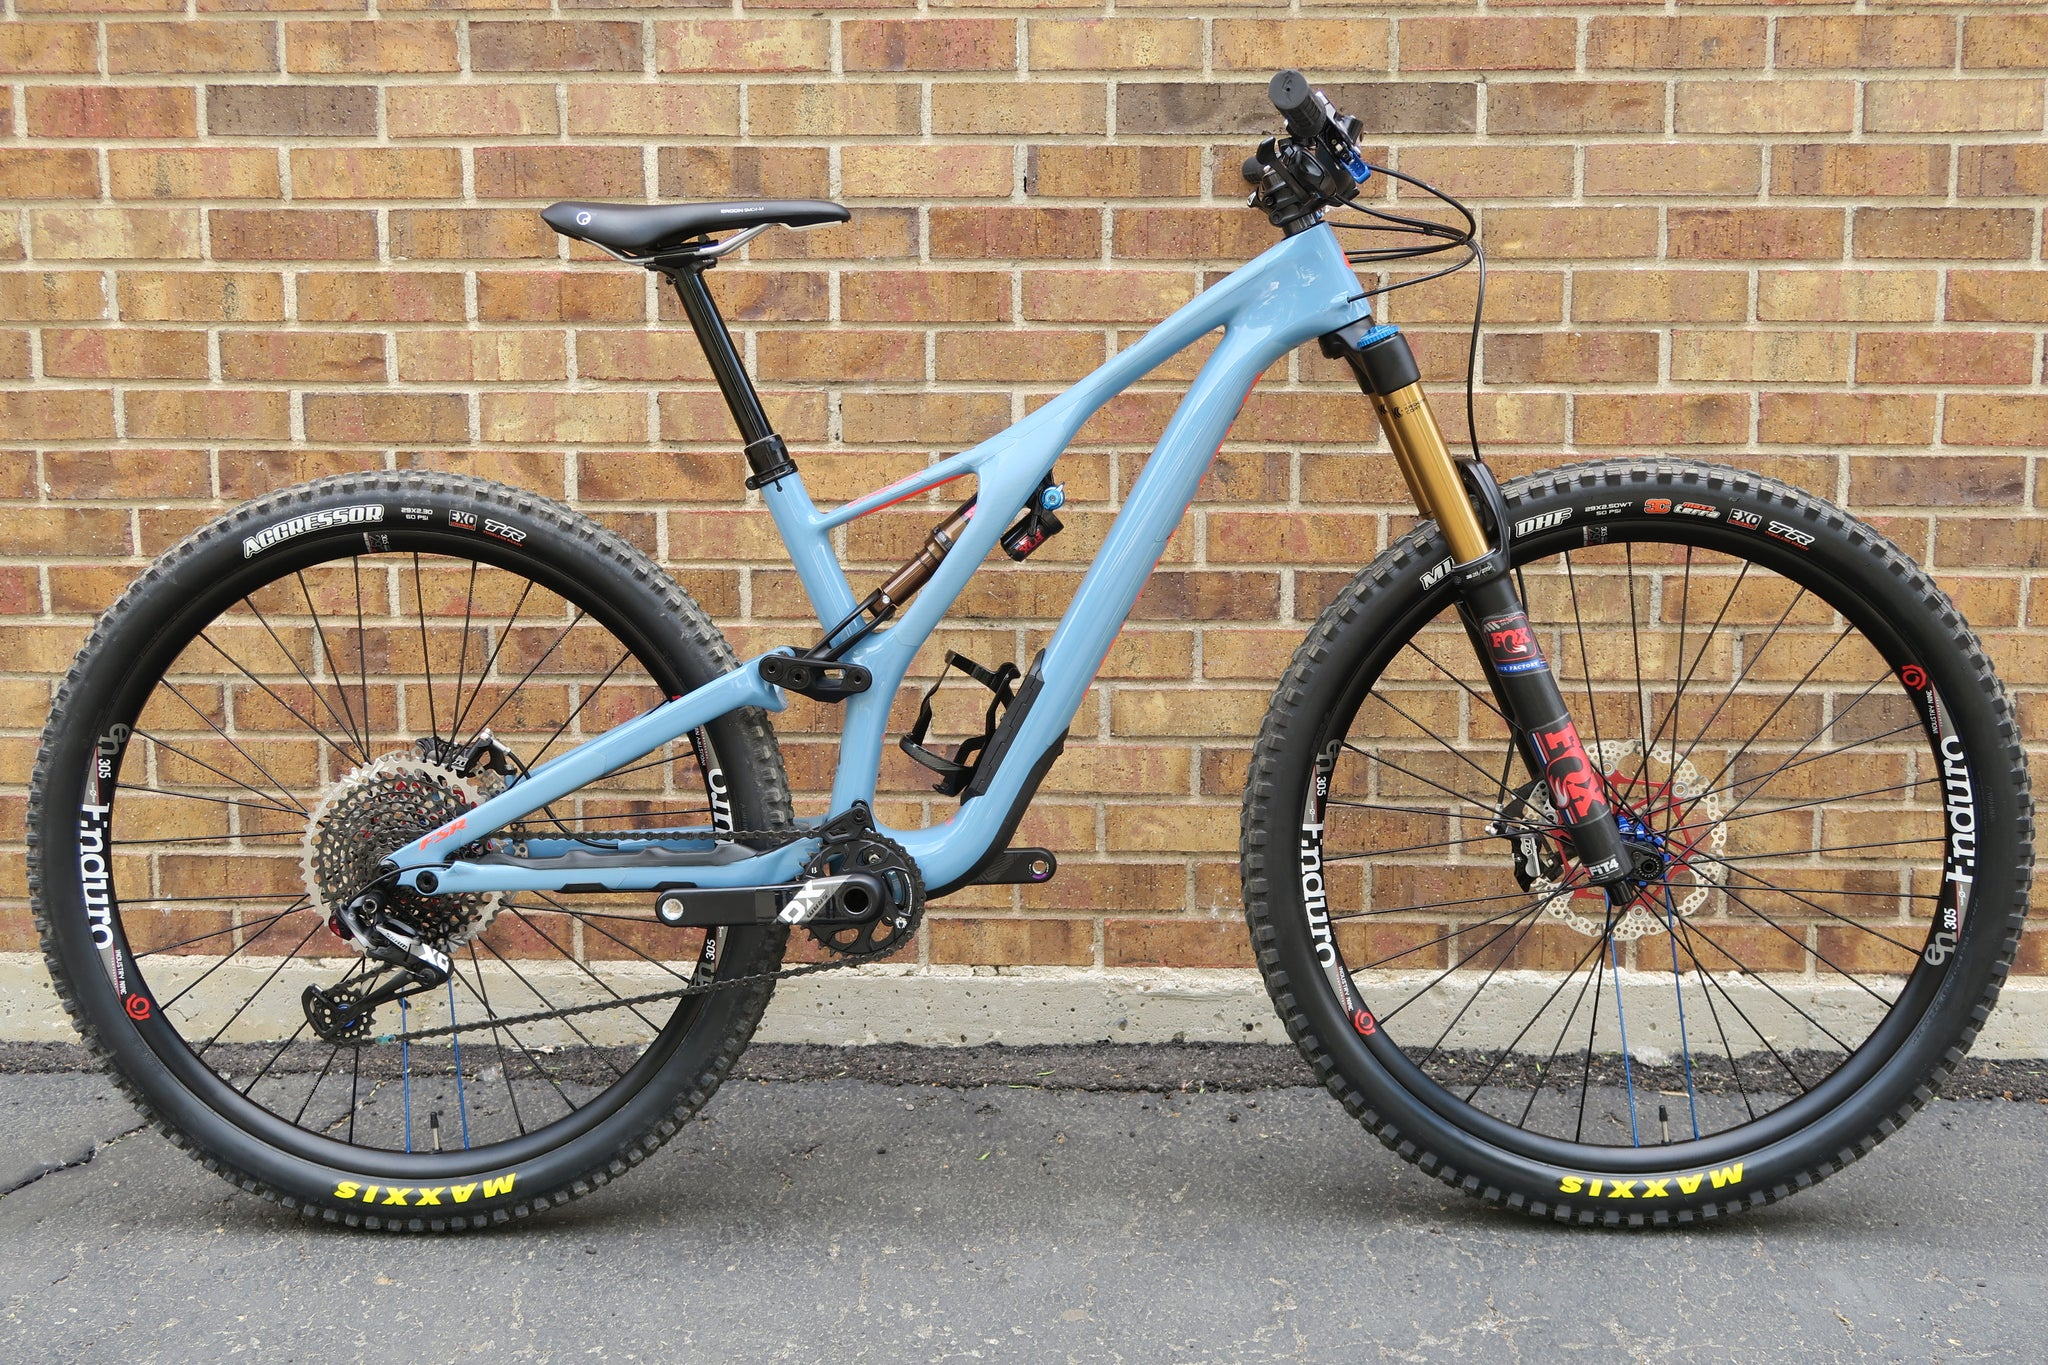 2019 SPECIALIZED STUMPJUMPER EXPERT 29 CARBON – Altitude